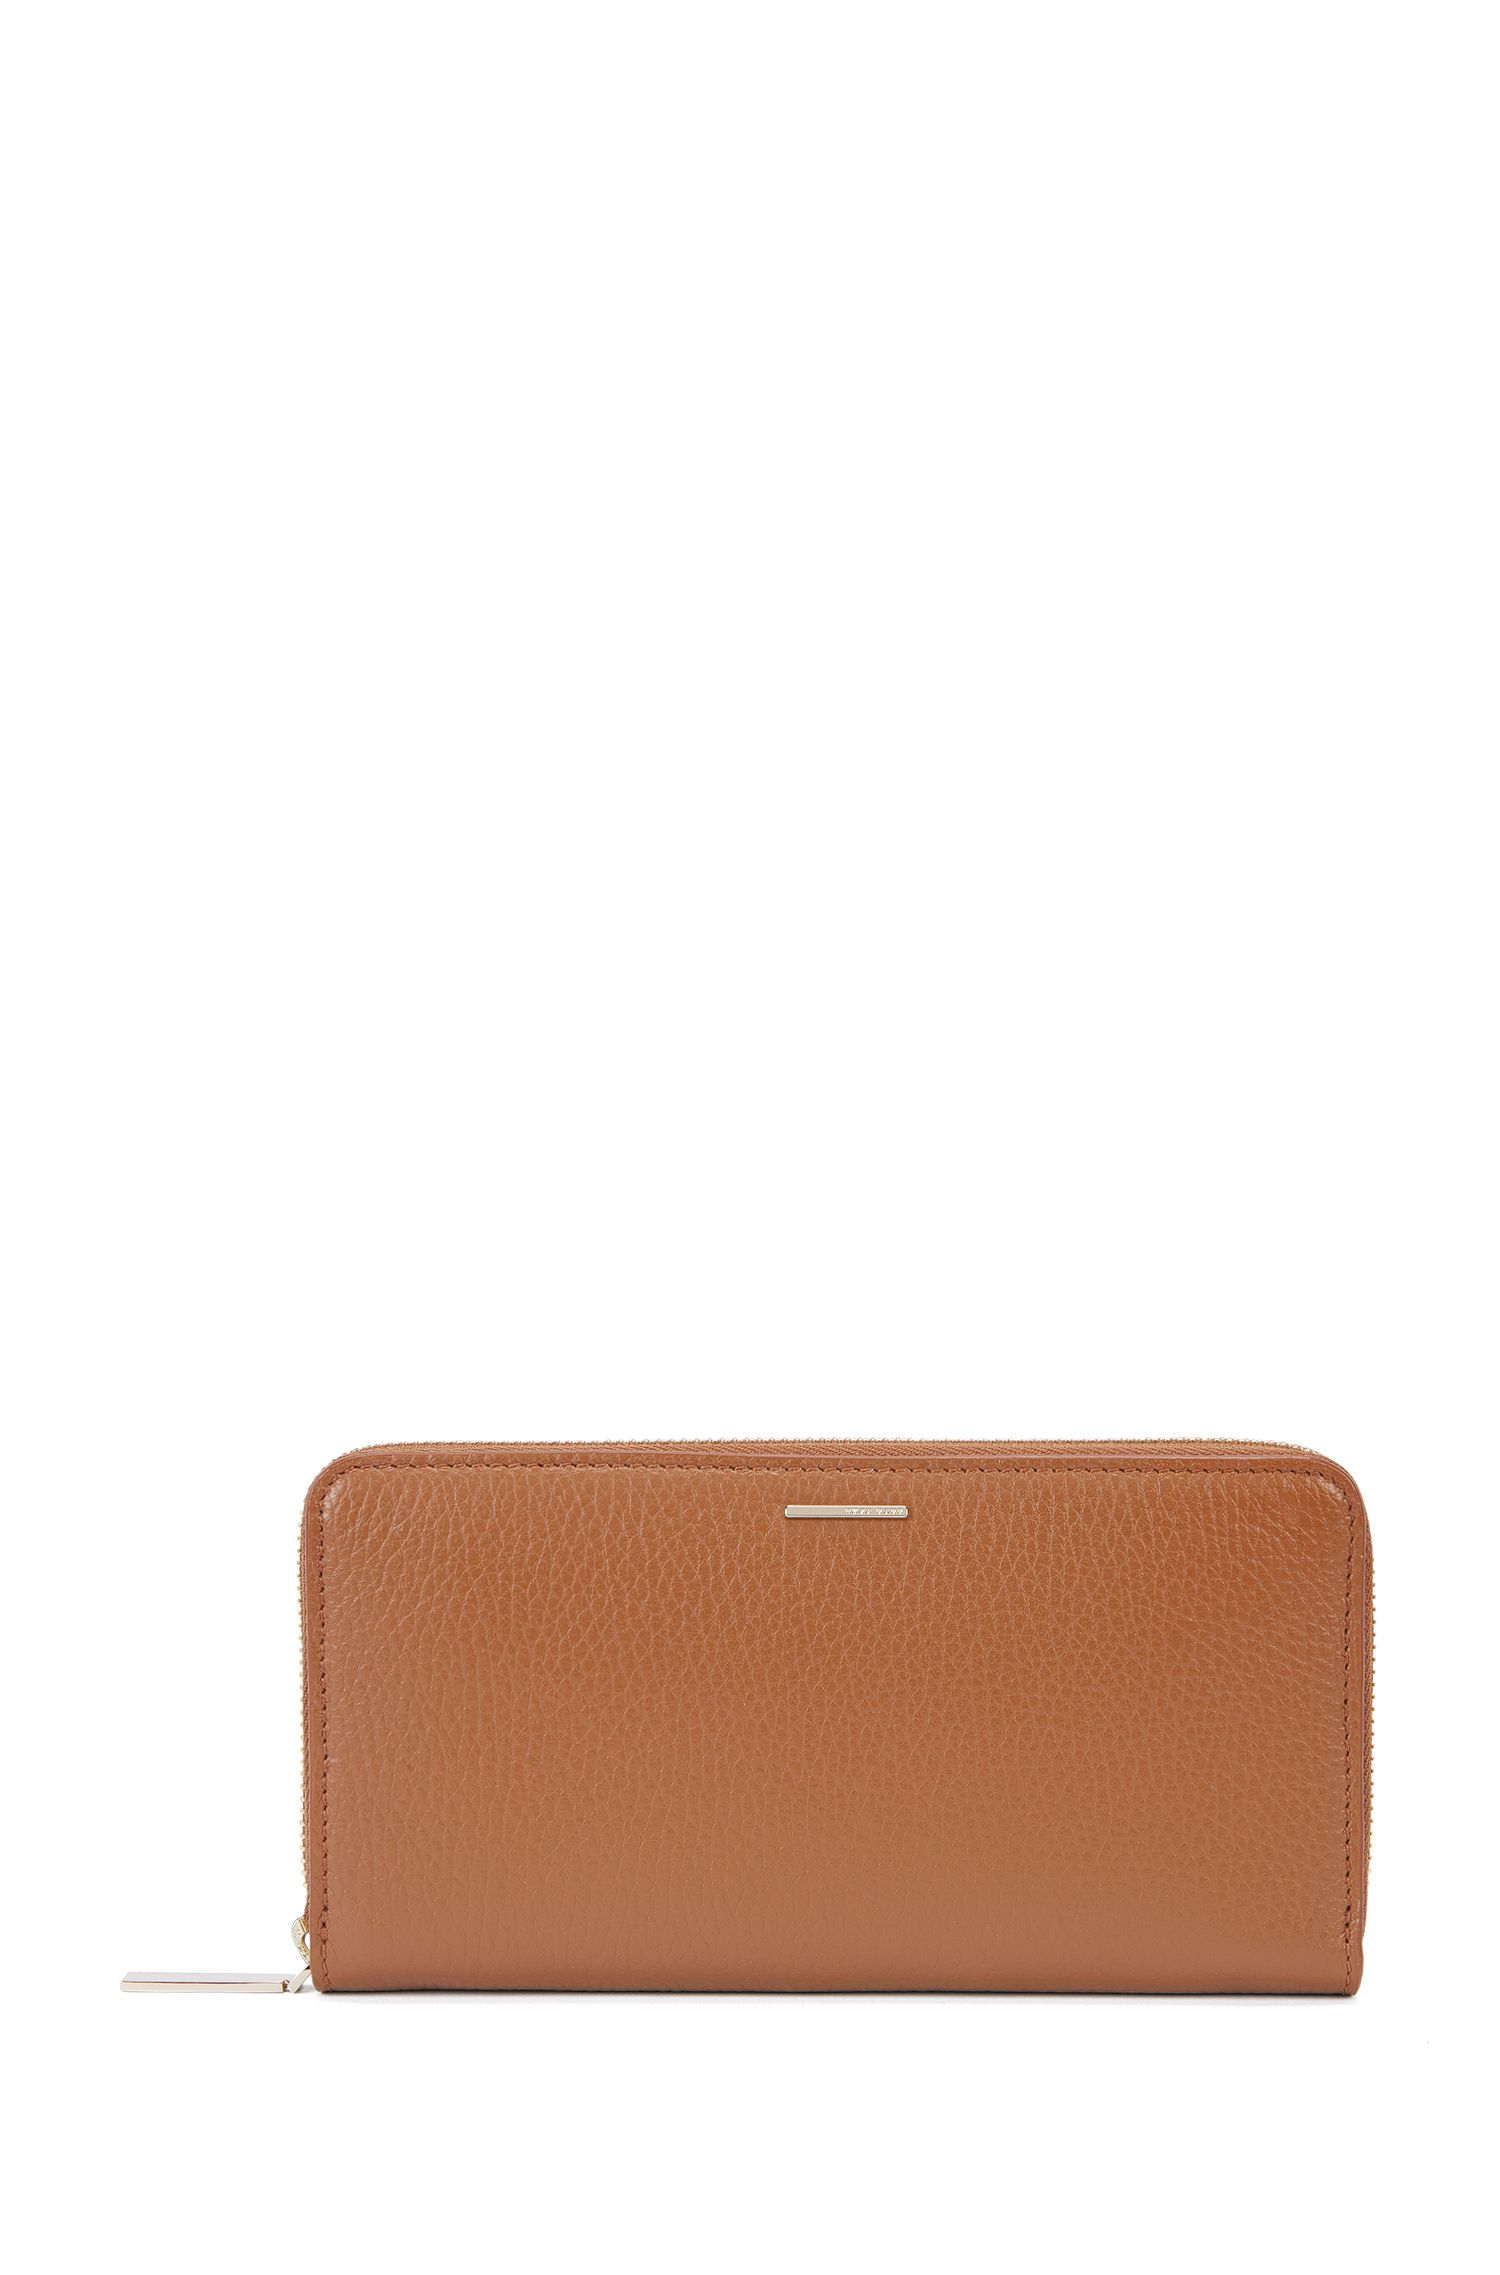 Cartera de BOSS Luxury Staple en piel granulada